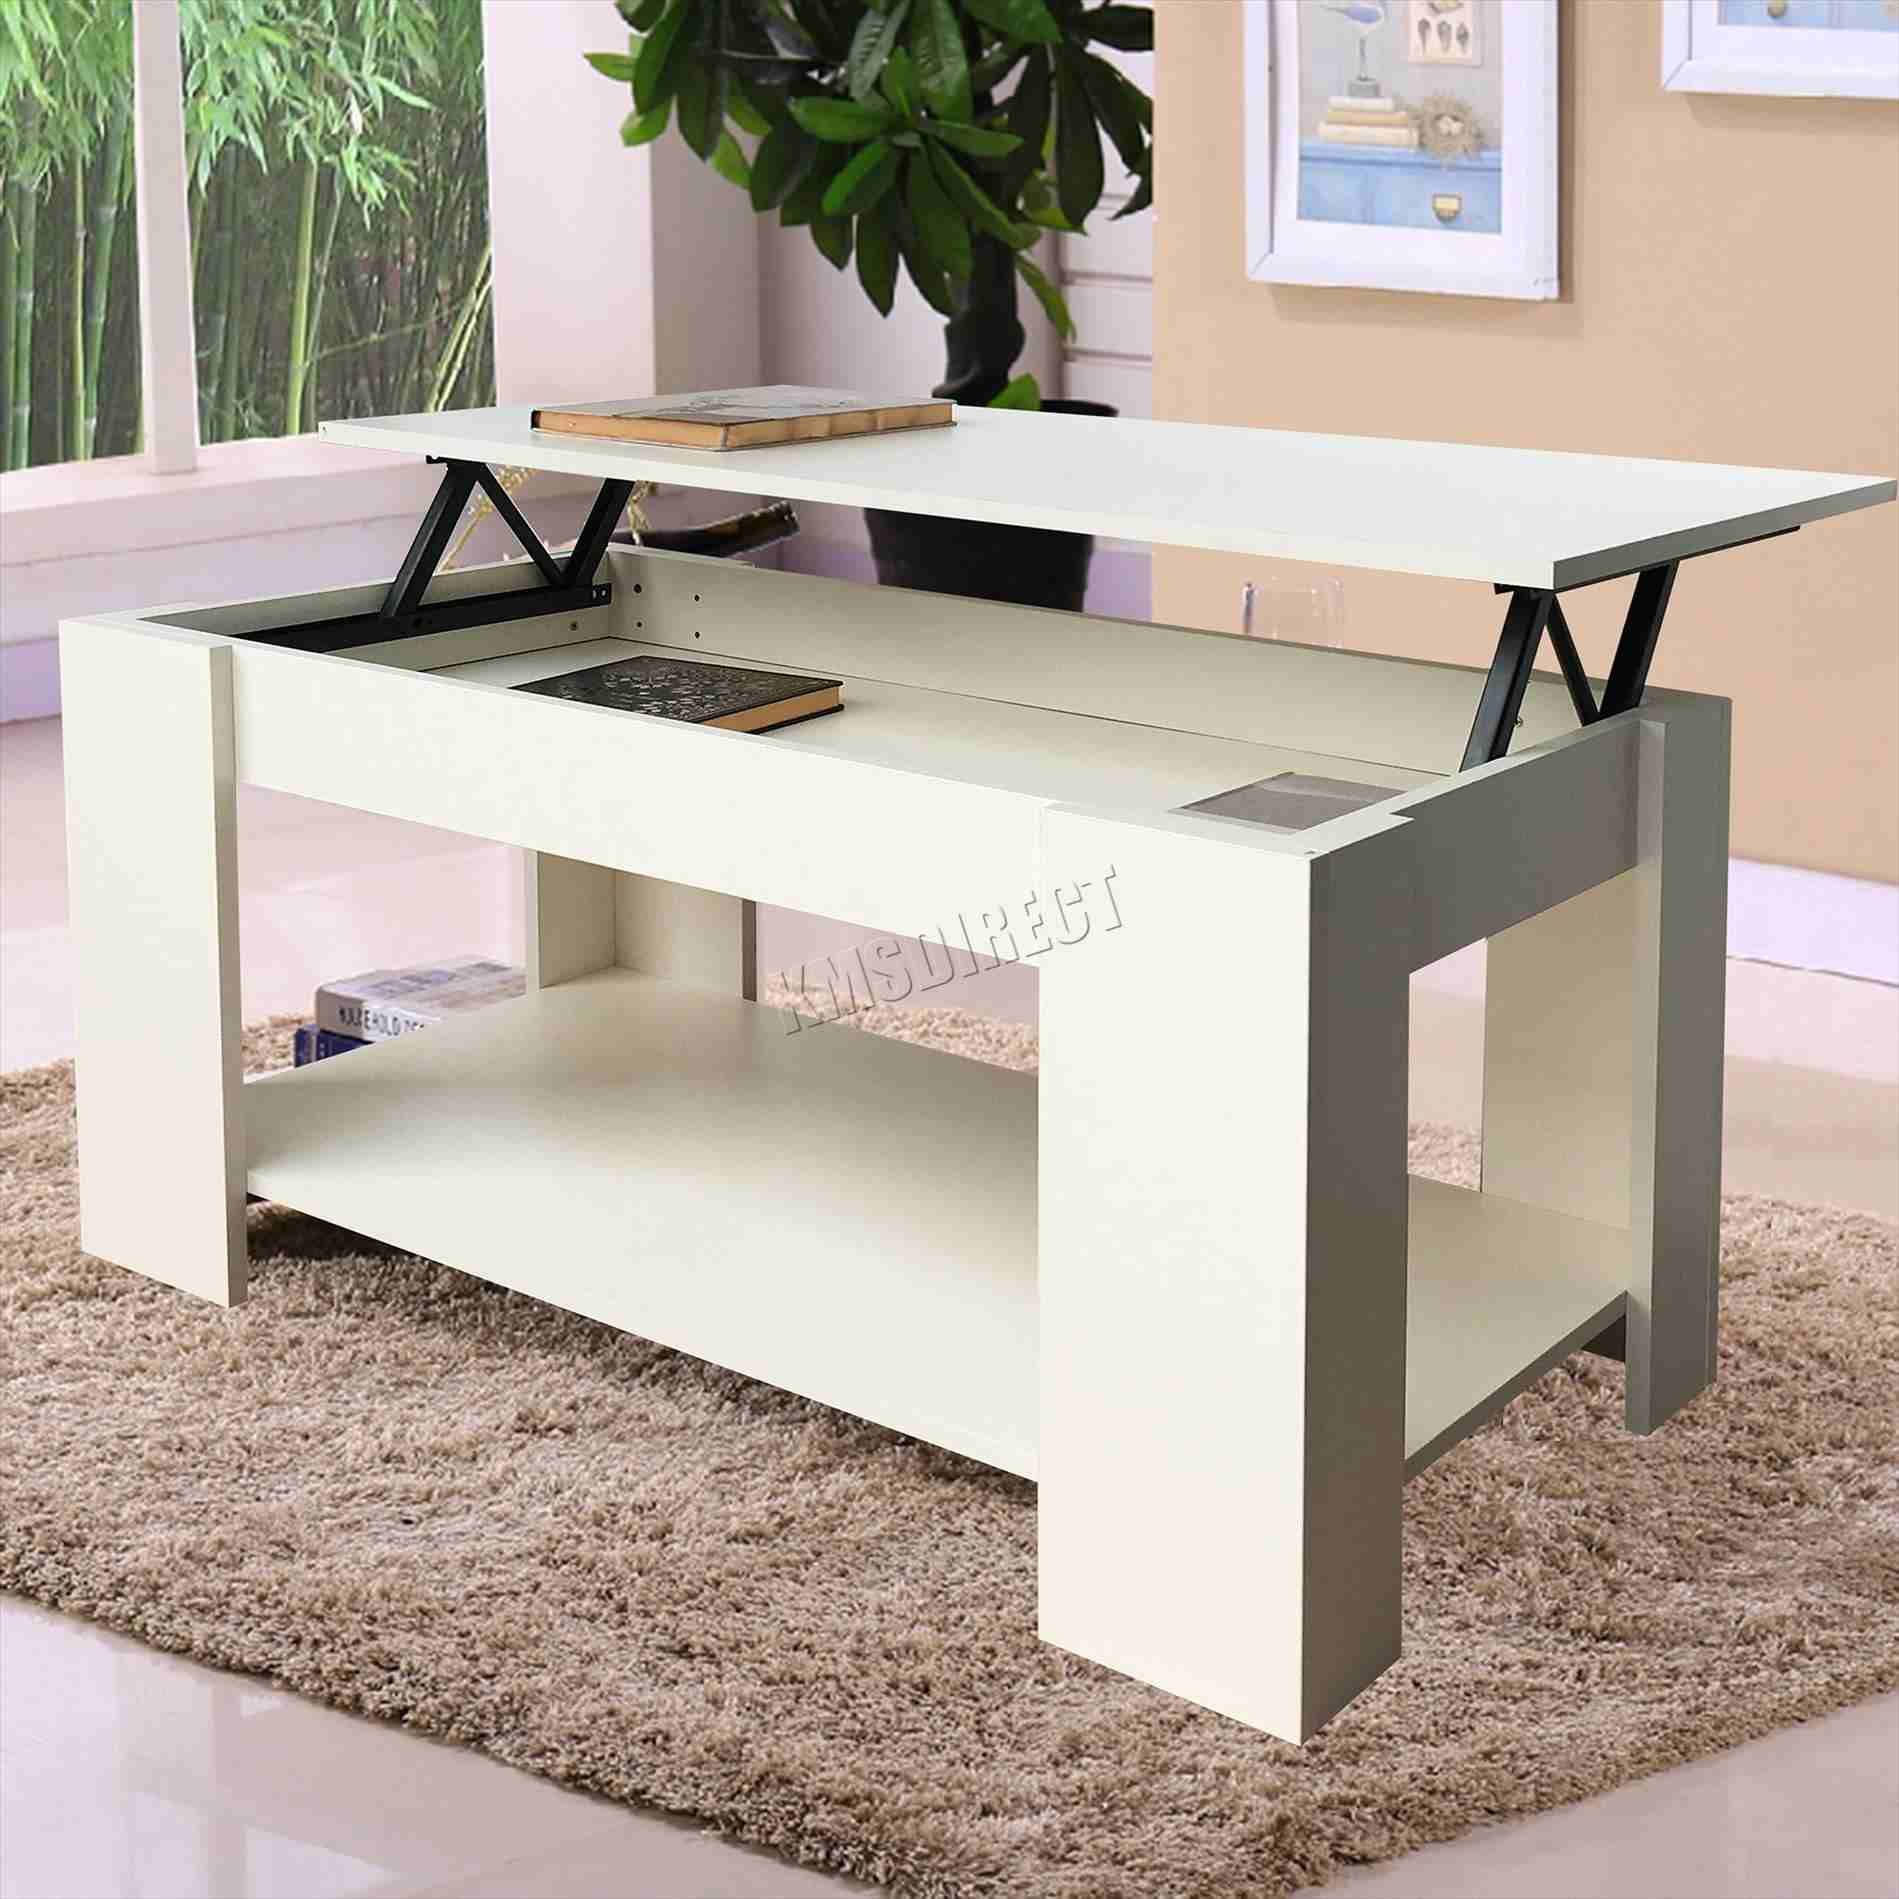 Coffee Table Raises To Dining Height That Up Cfee Lift Top Ikea Lifts The